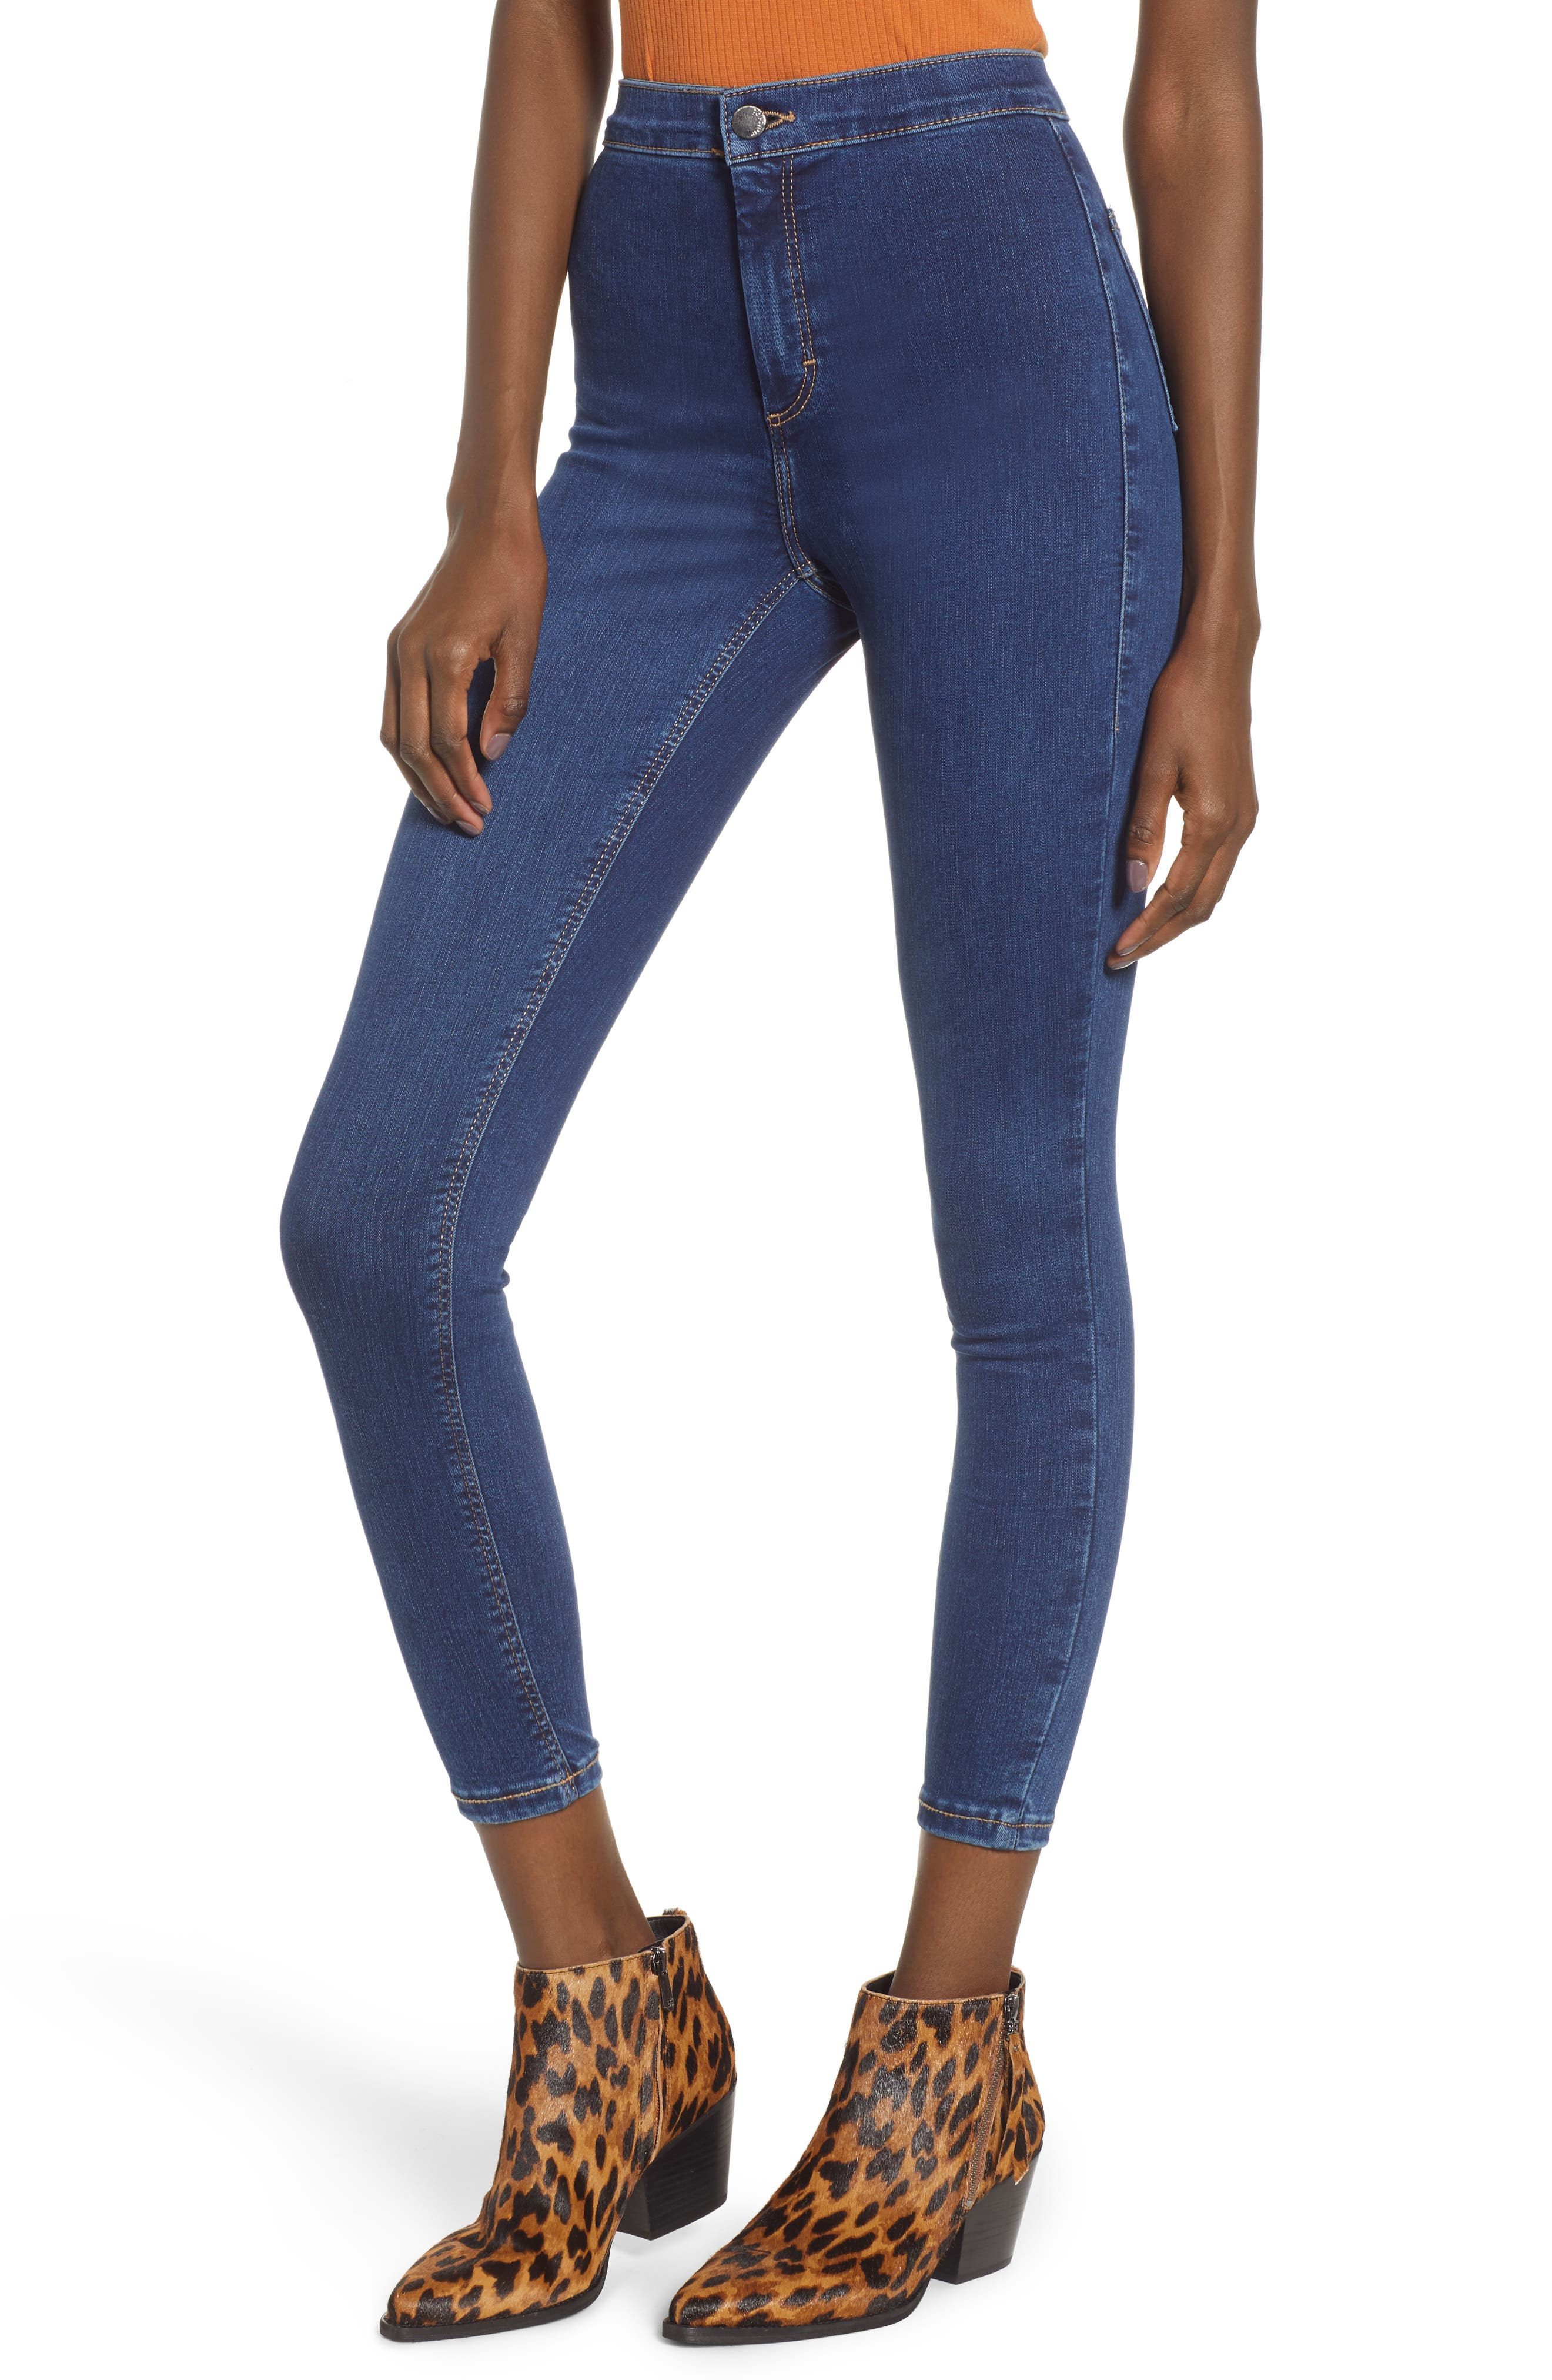 TOPSHOP, Joni High Waist Crop Skinny Jeans, Main thumbnail 1, color, 400